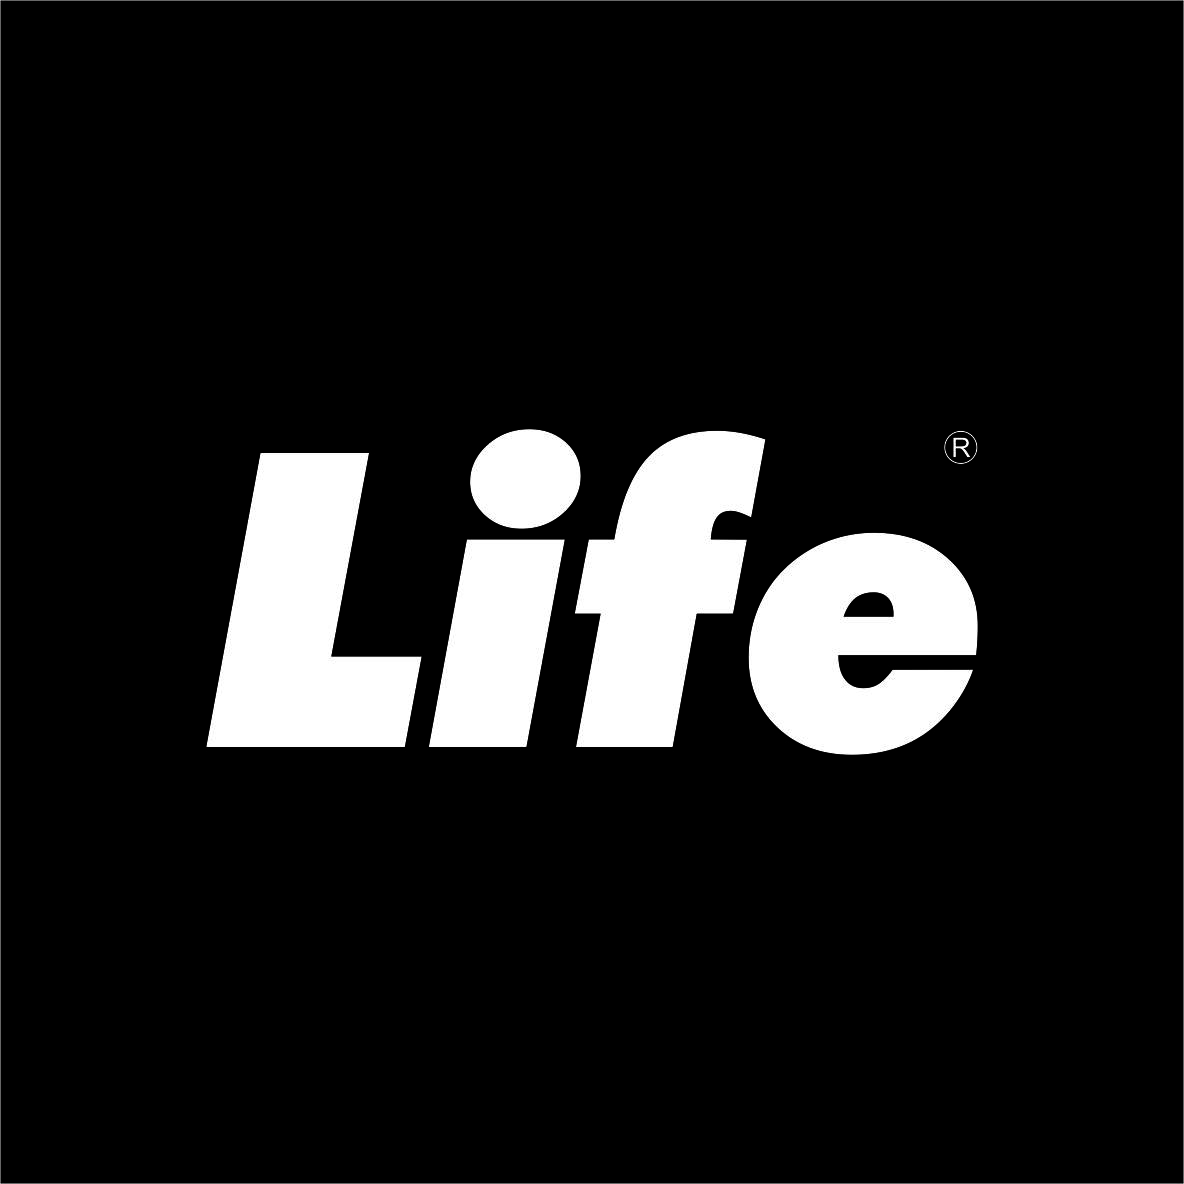 Life Clothing logo